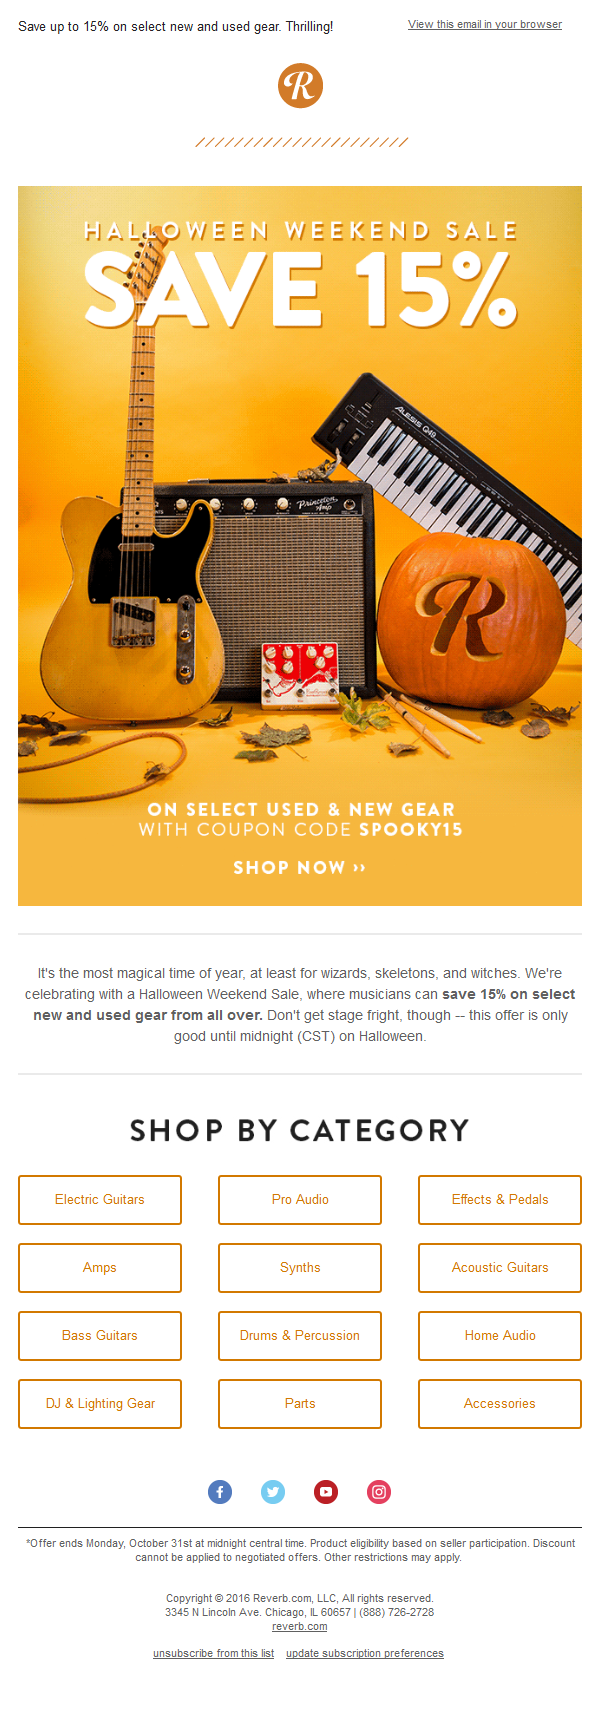 Reverb.com - Halloween Sale begins